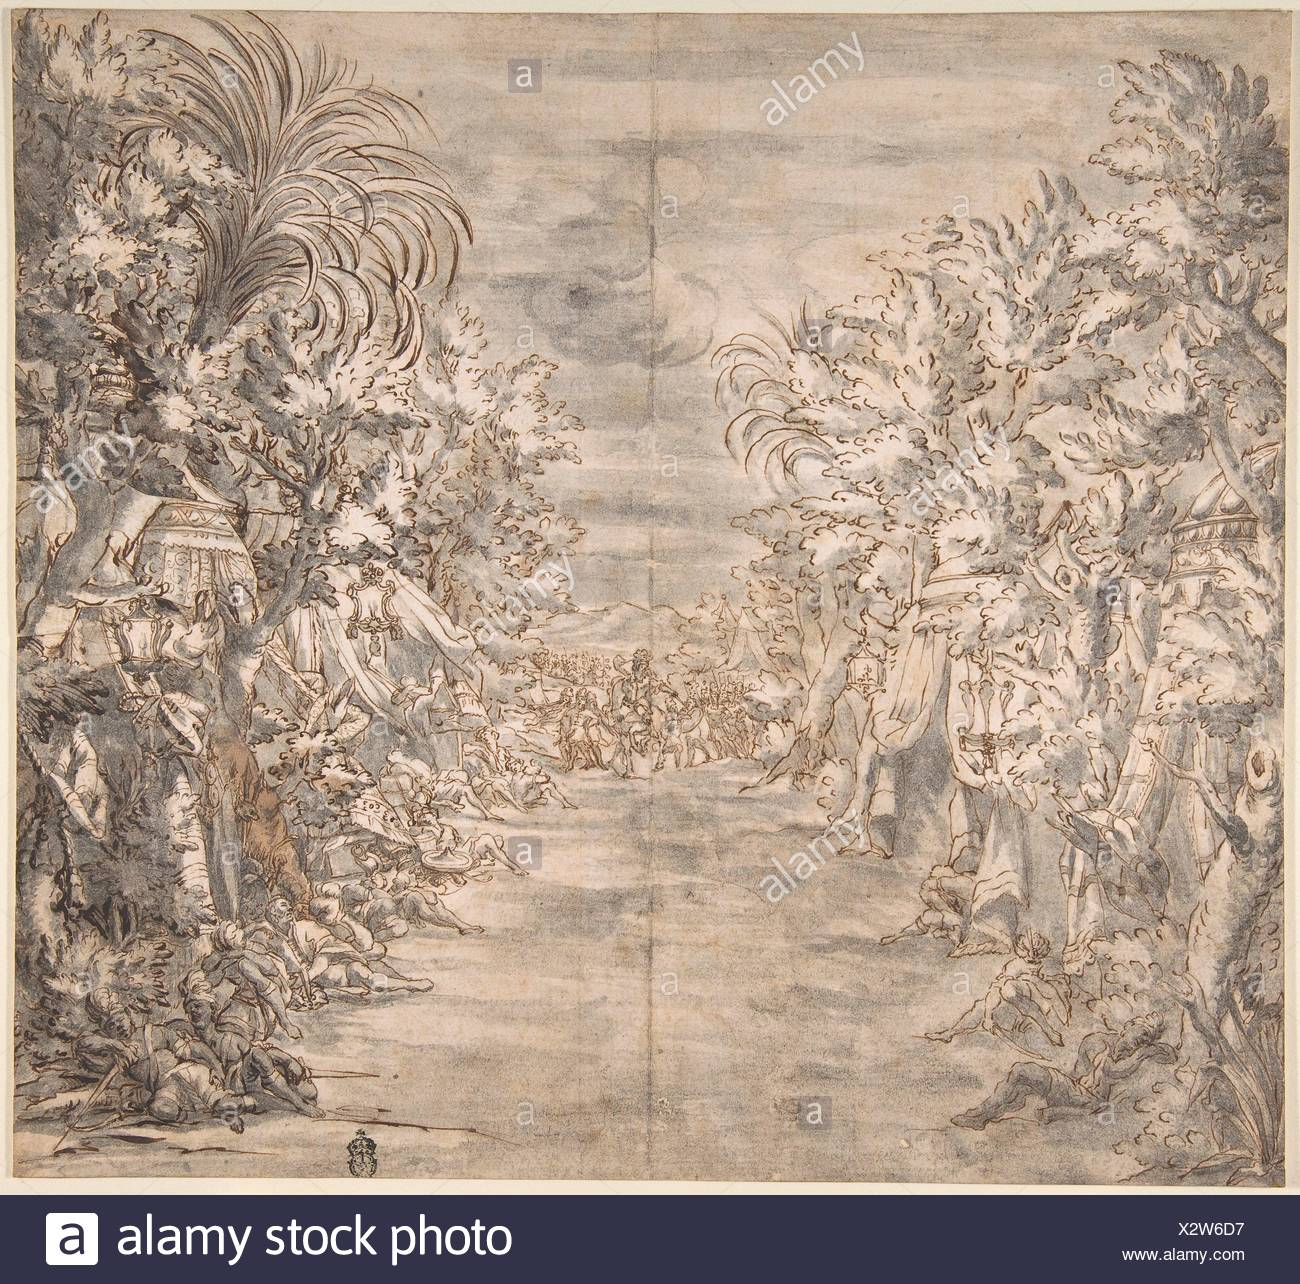 Ornamental Theater Scene with Trees. Artist: Anonymous, Italian, 17th or 18th century; Date: 17th-18th century; Medium: Pen and brown ink, brush and Stock Photo